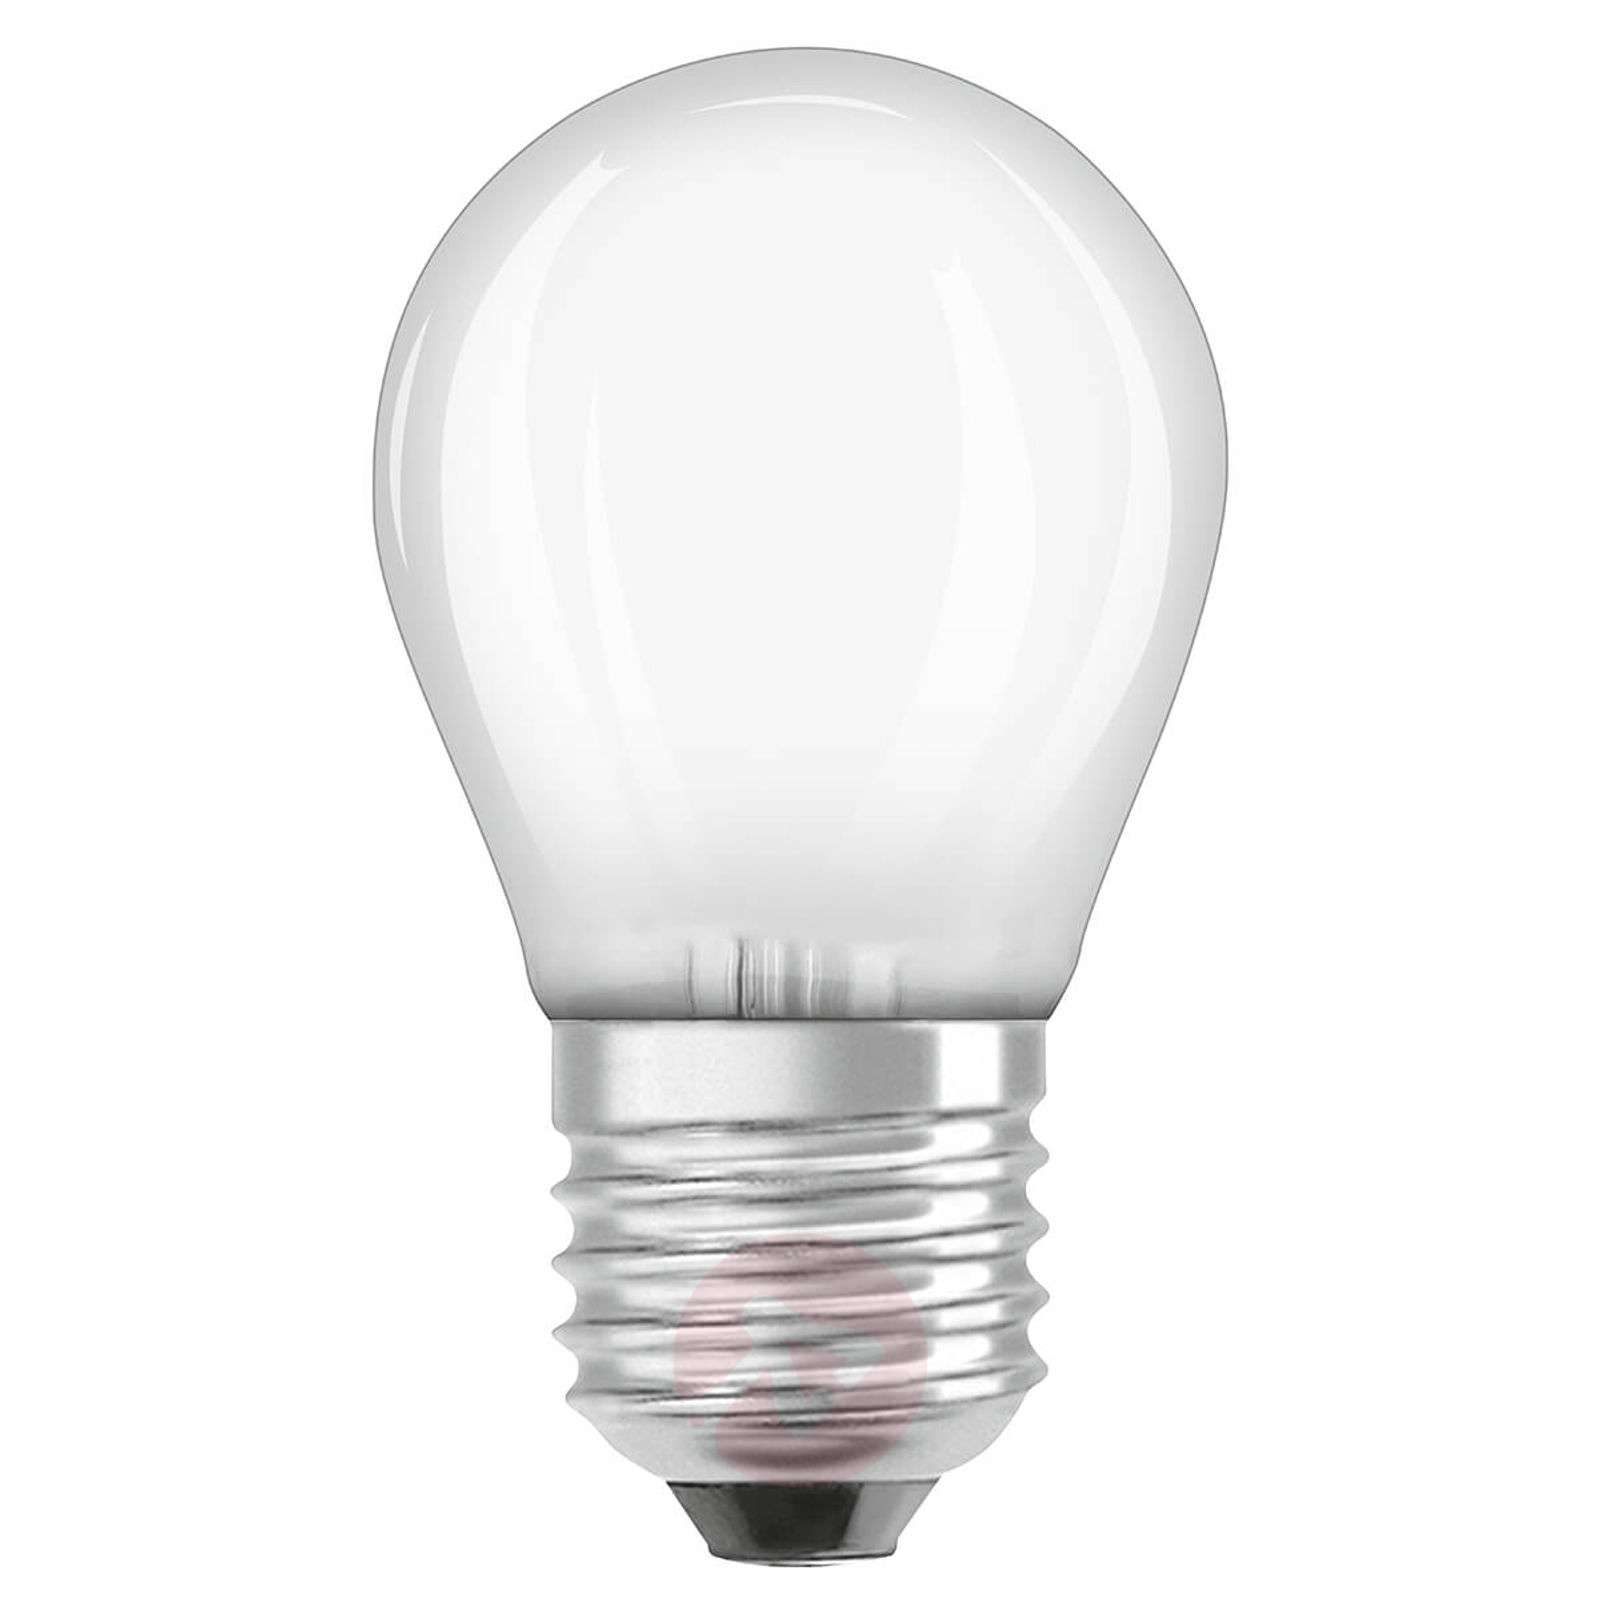 Ampoule goutte led e27 3 2w blanc chaud dimmable - Ampoule led dimmable ...